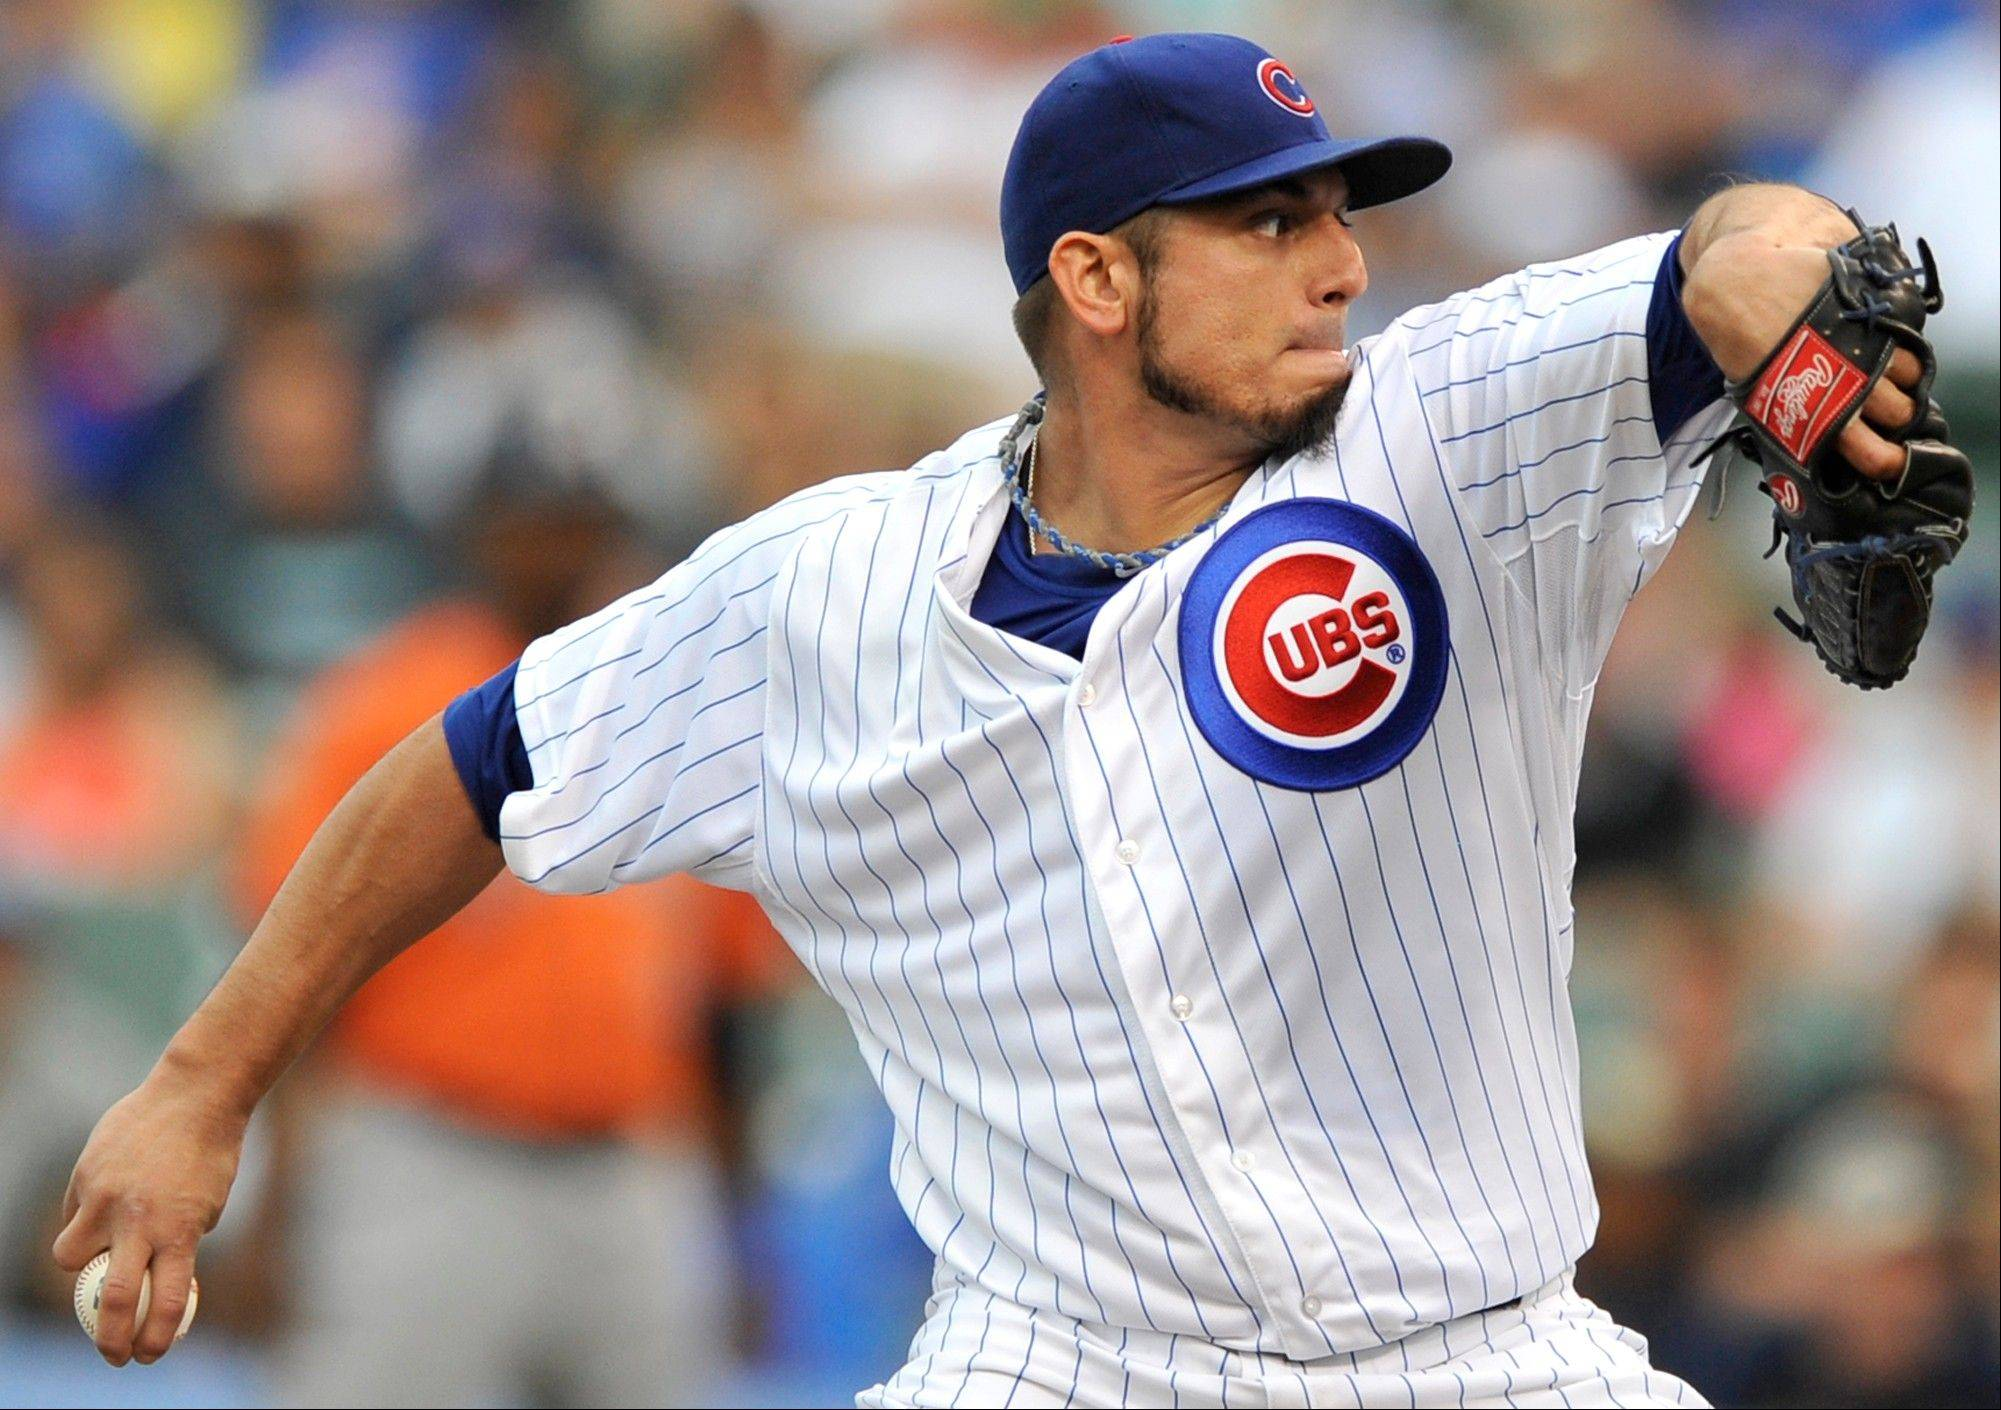 Cubs starter Matt Garza delivers a pitch during the first inning of a baseball game against the Houston Astros in Chicago, Friday, June 21, 2013.